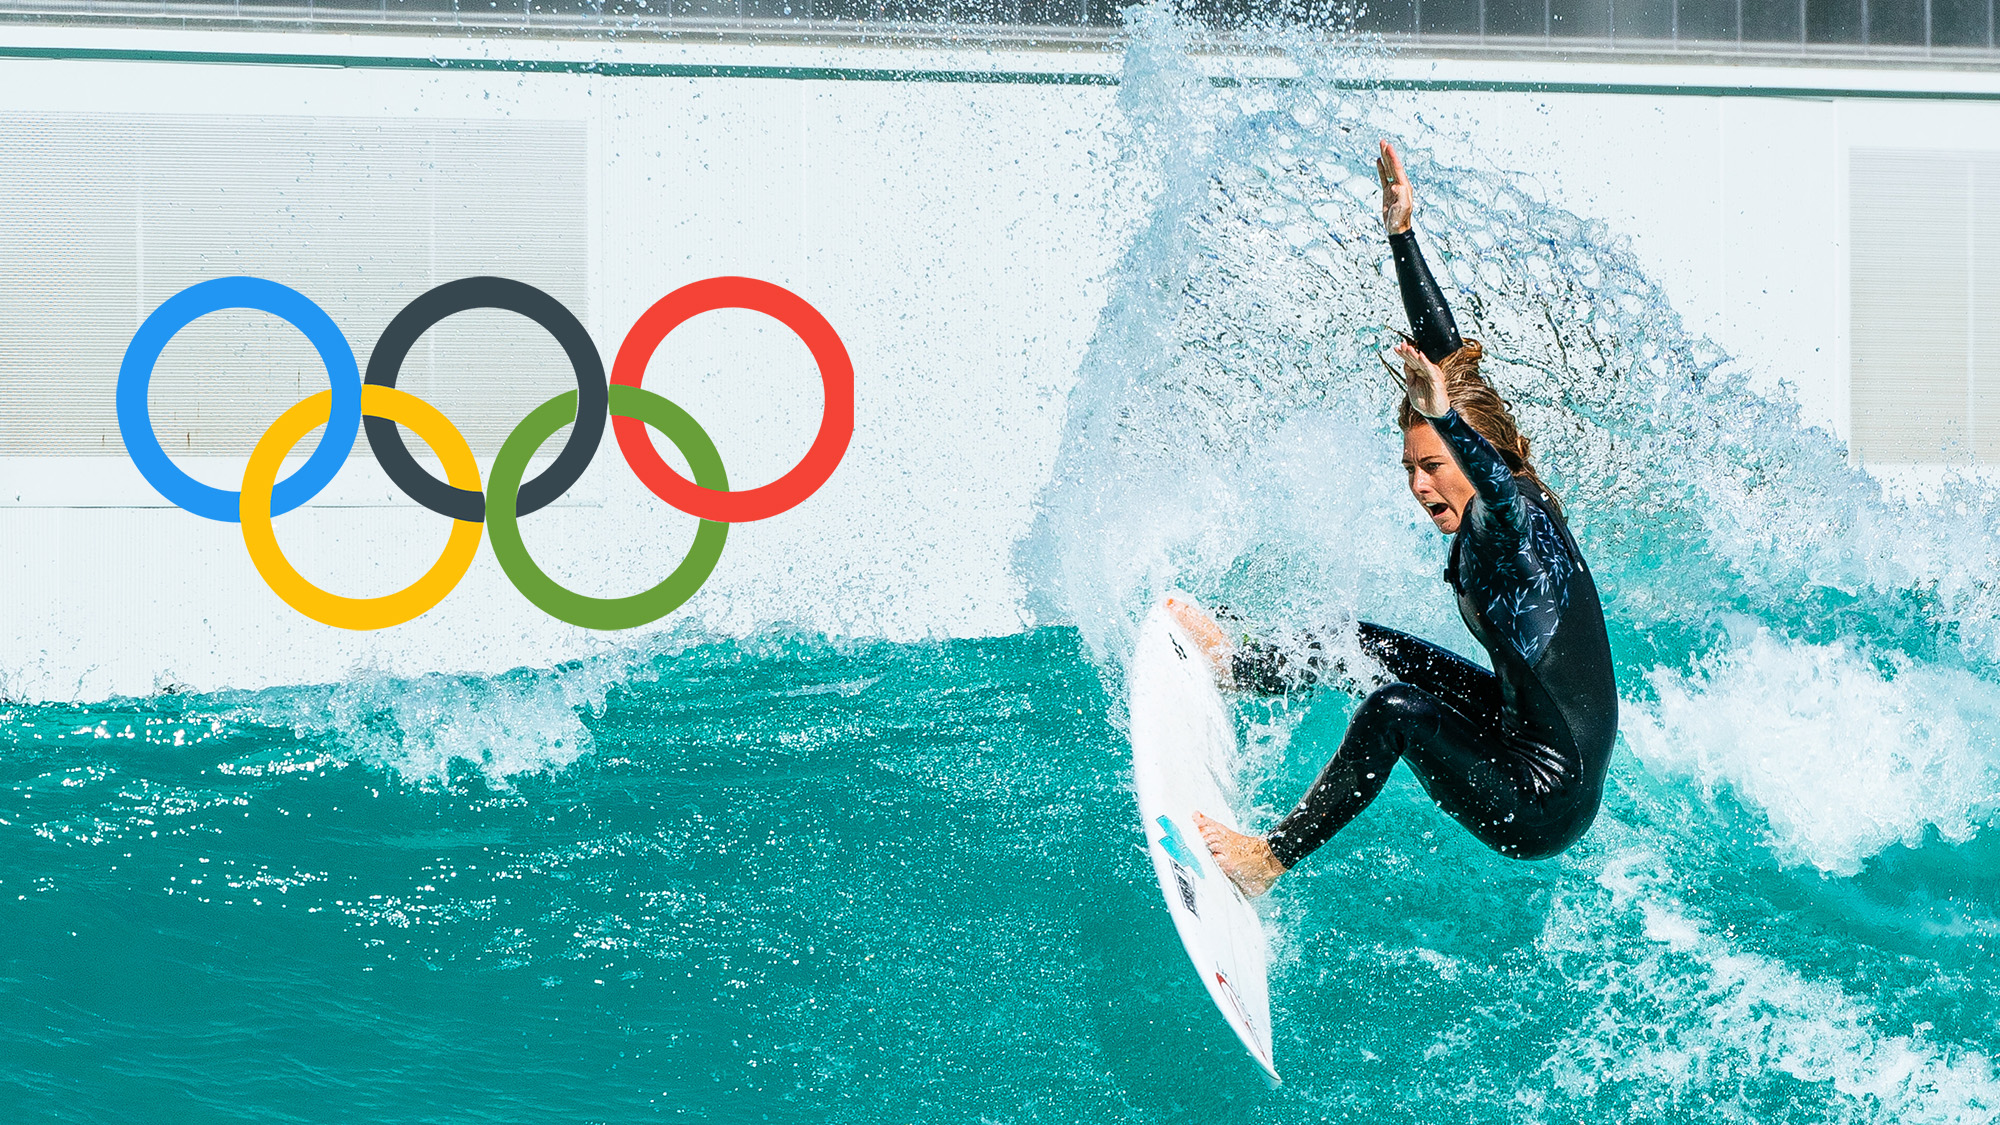 Olympic surfing: Nikki van Dijk wavegarden cove